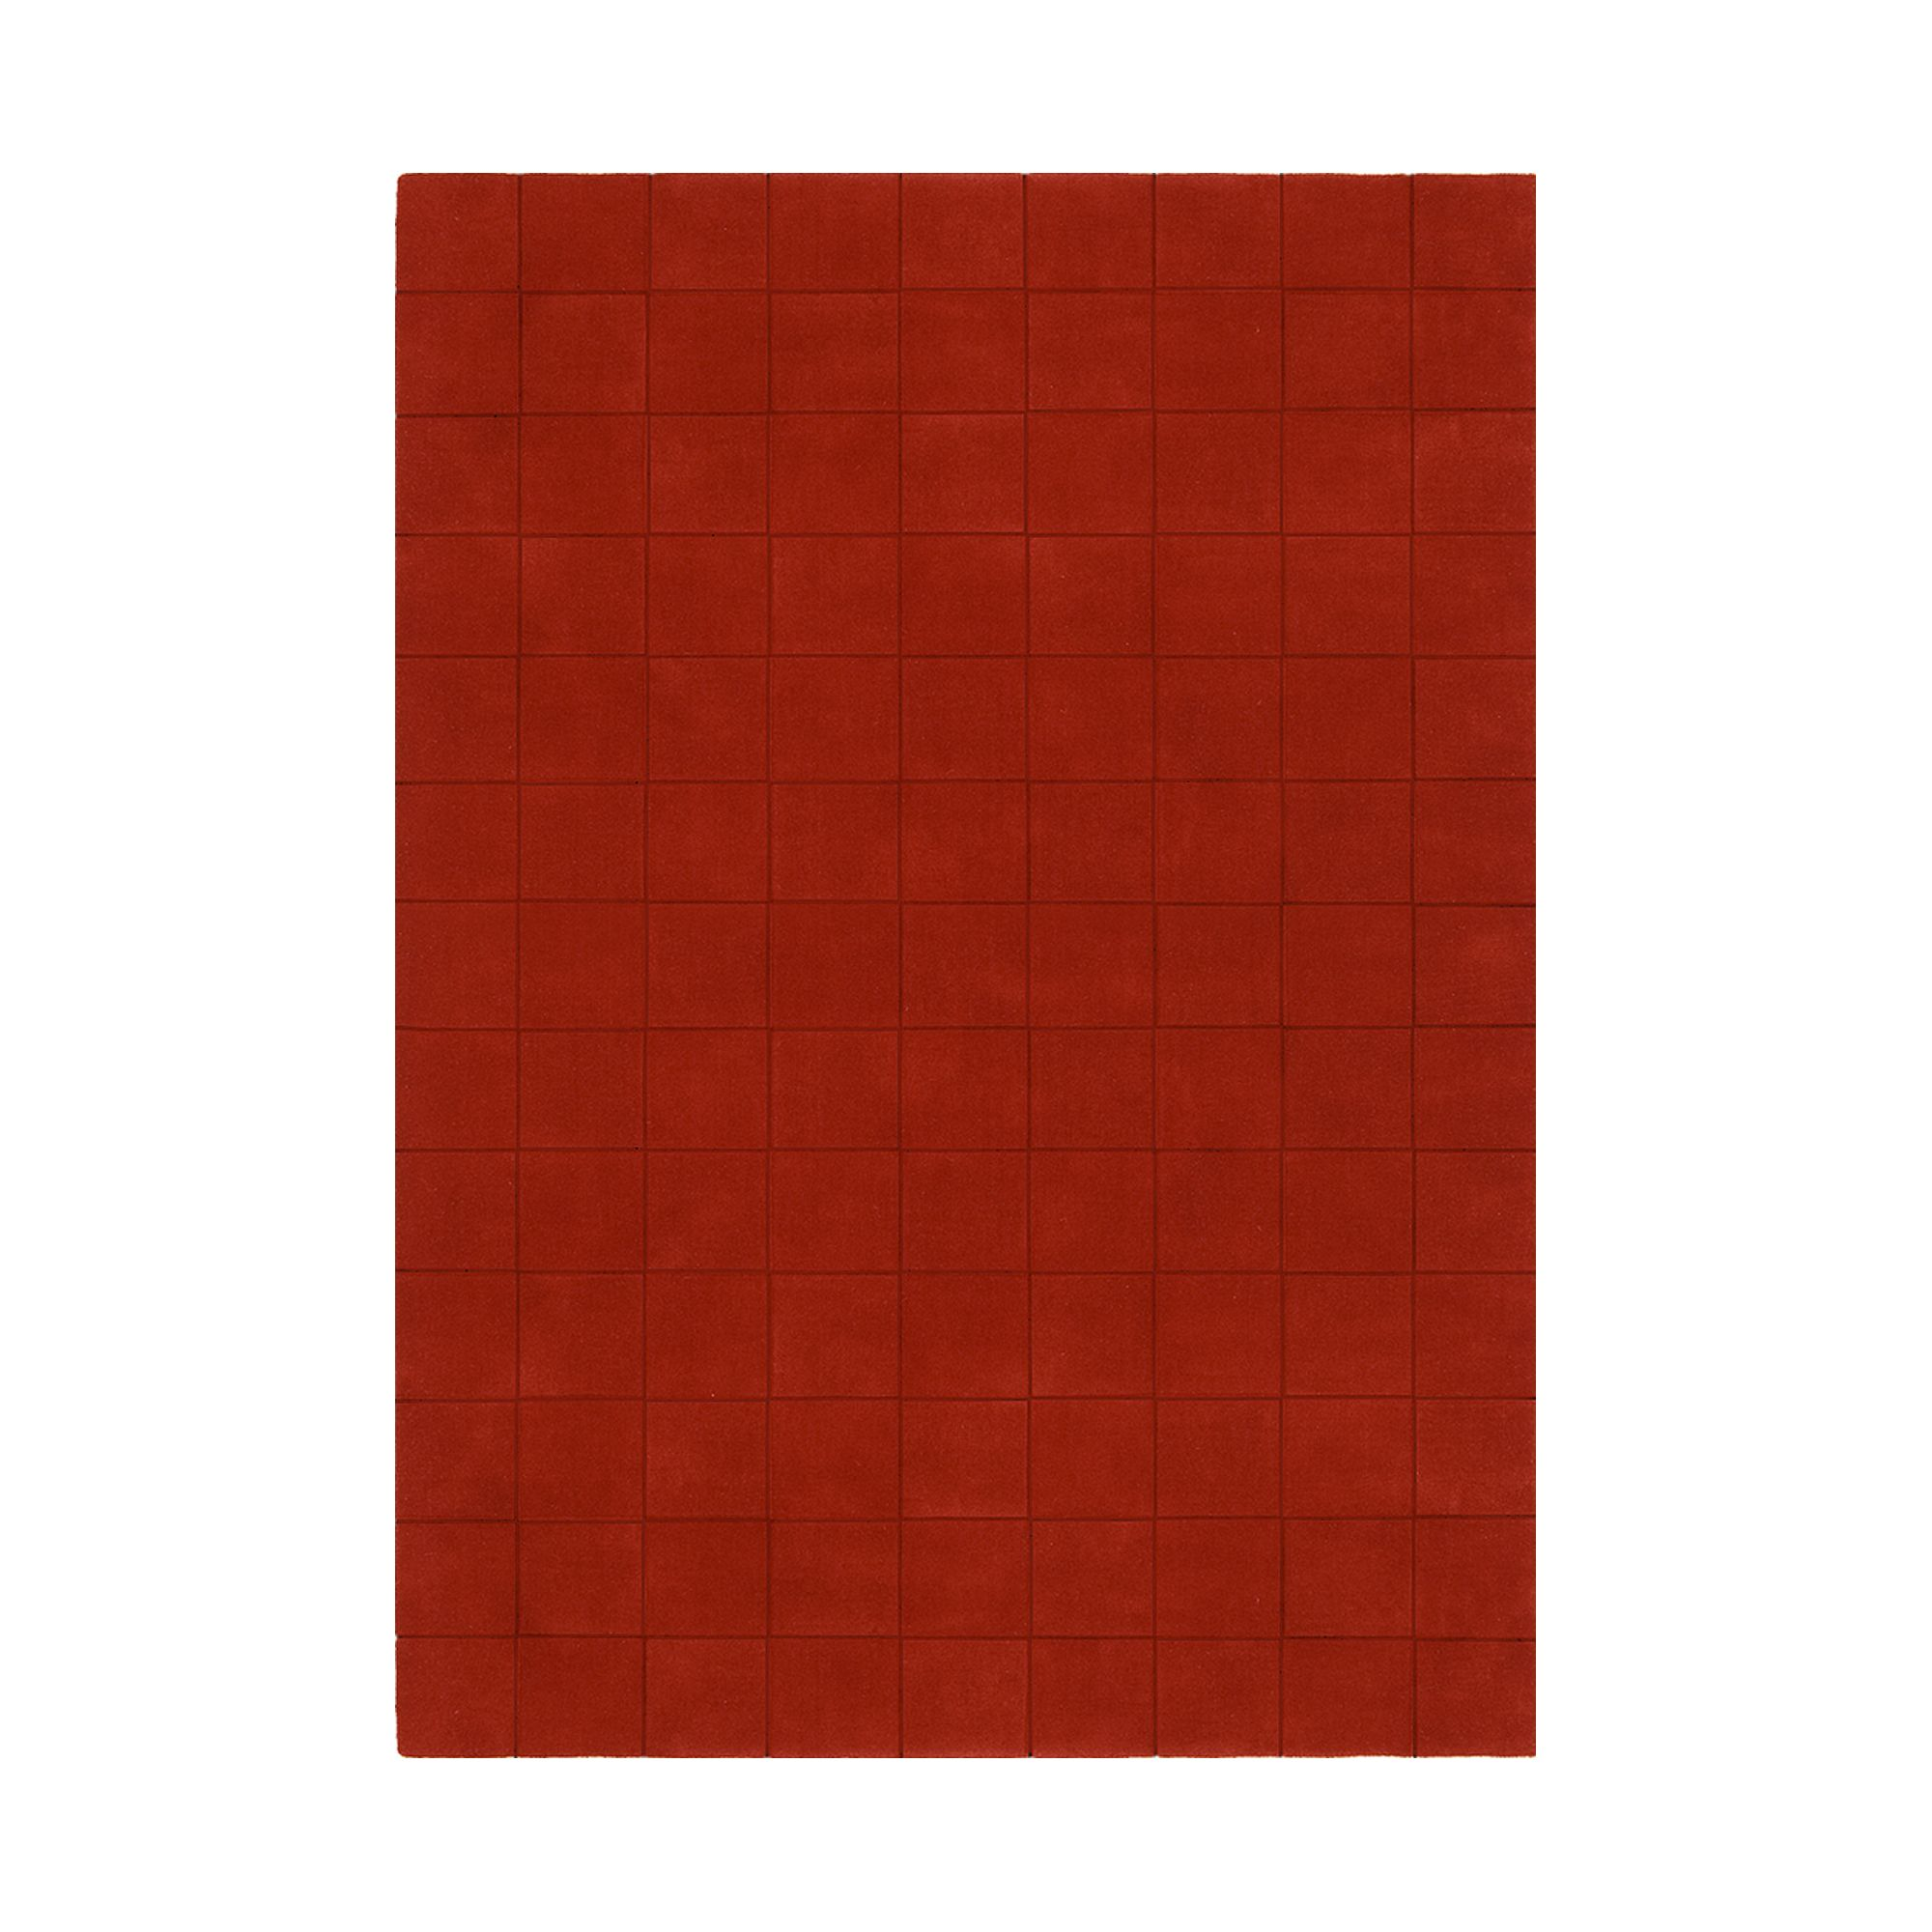 Linie Design Luzern Red Rug - 300cm x 200cm at Tesco Direct